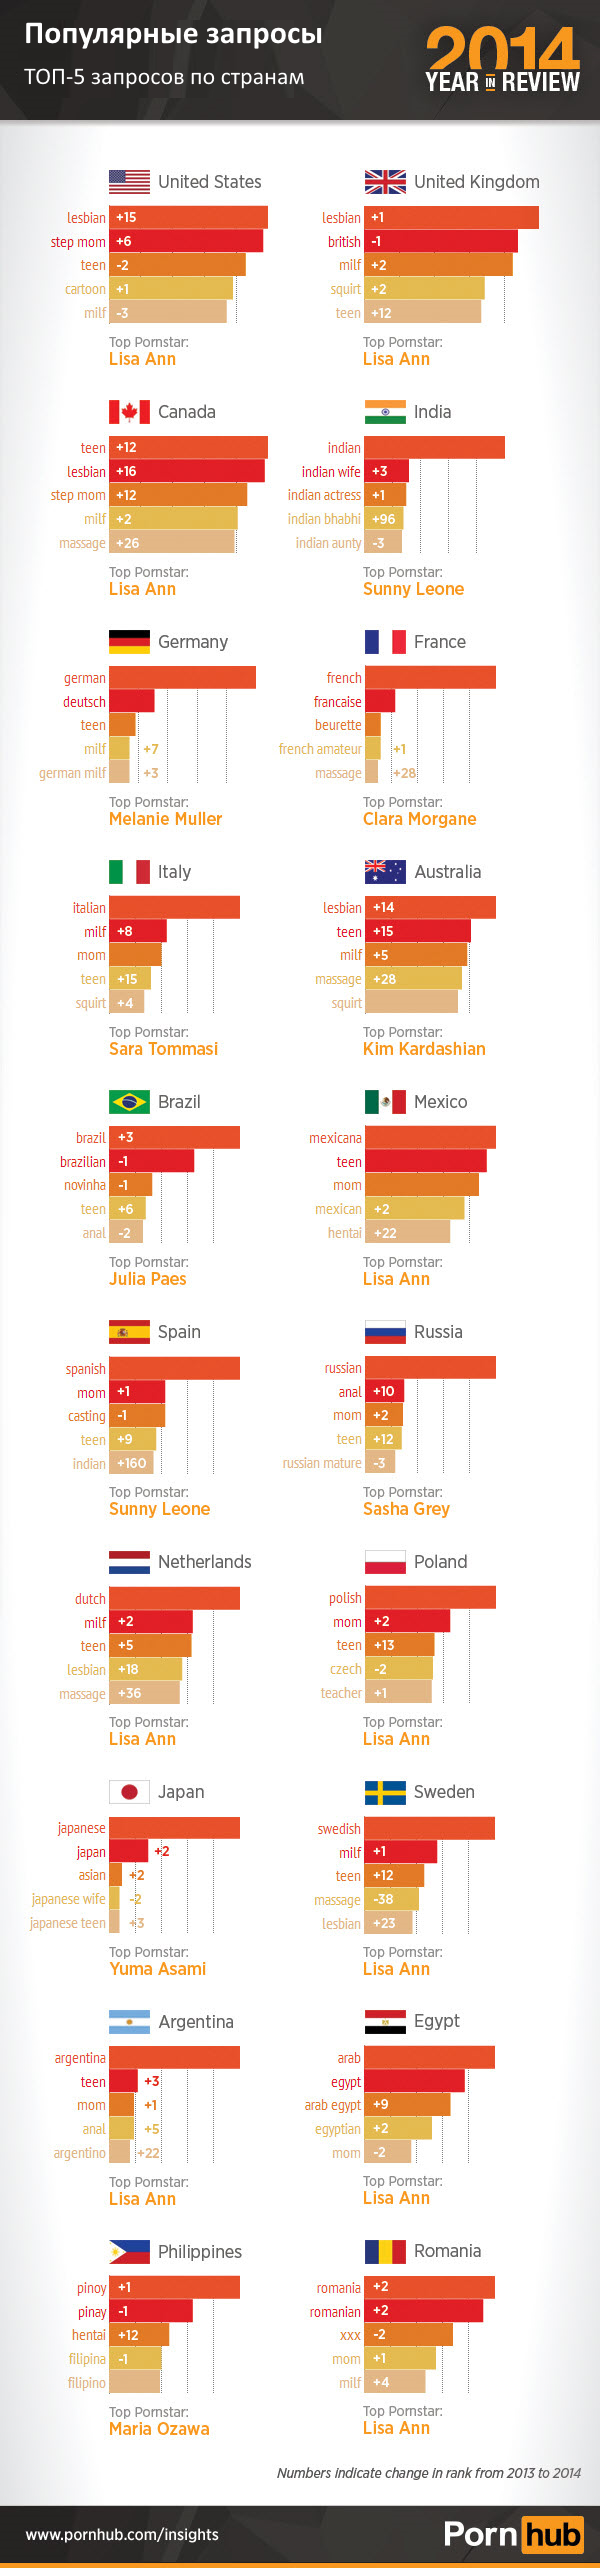 pornhub-2014-top-5-searches-country_translated